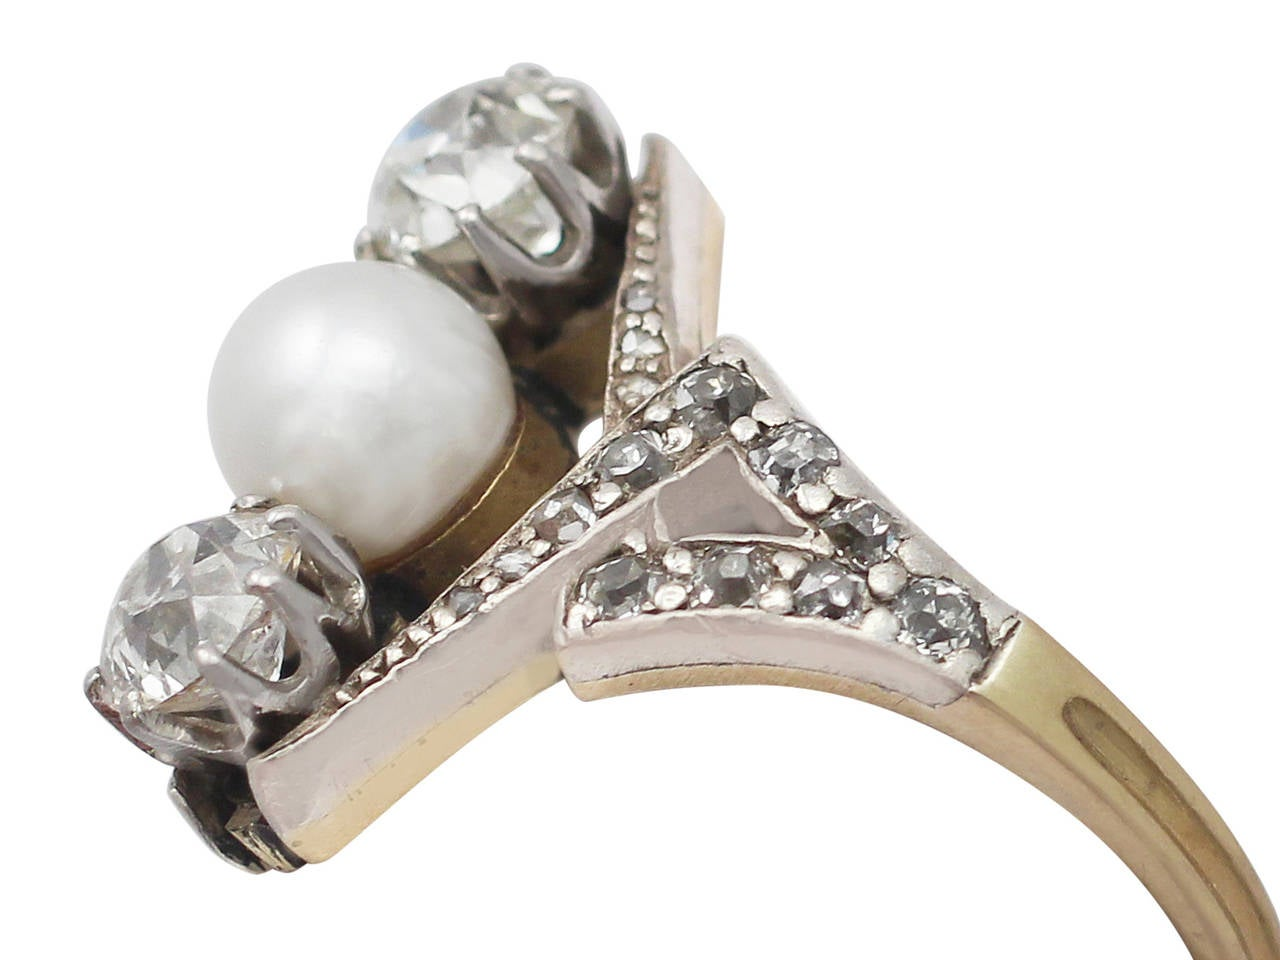 1900s Antique 1.15 Carat Diamond and Pearl Yellow Gold Cocktail Ring In Excellent Condition For Sale In Jesmond, Newcastle Upon Tyne